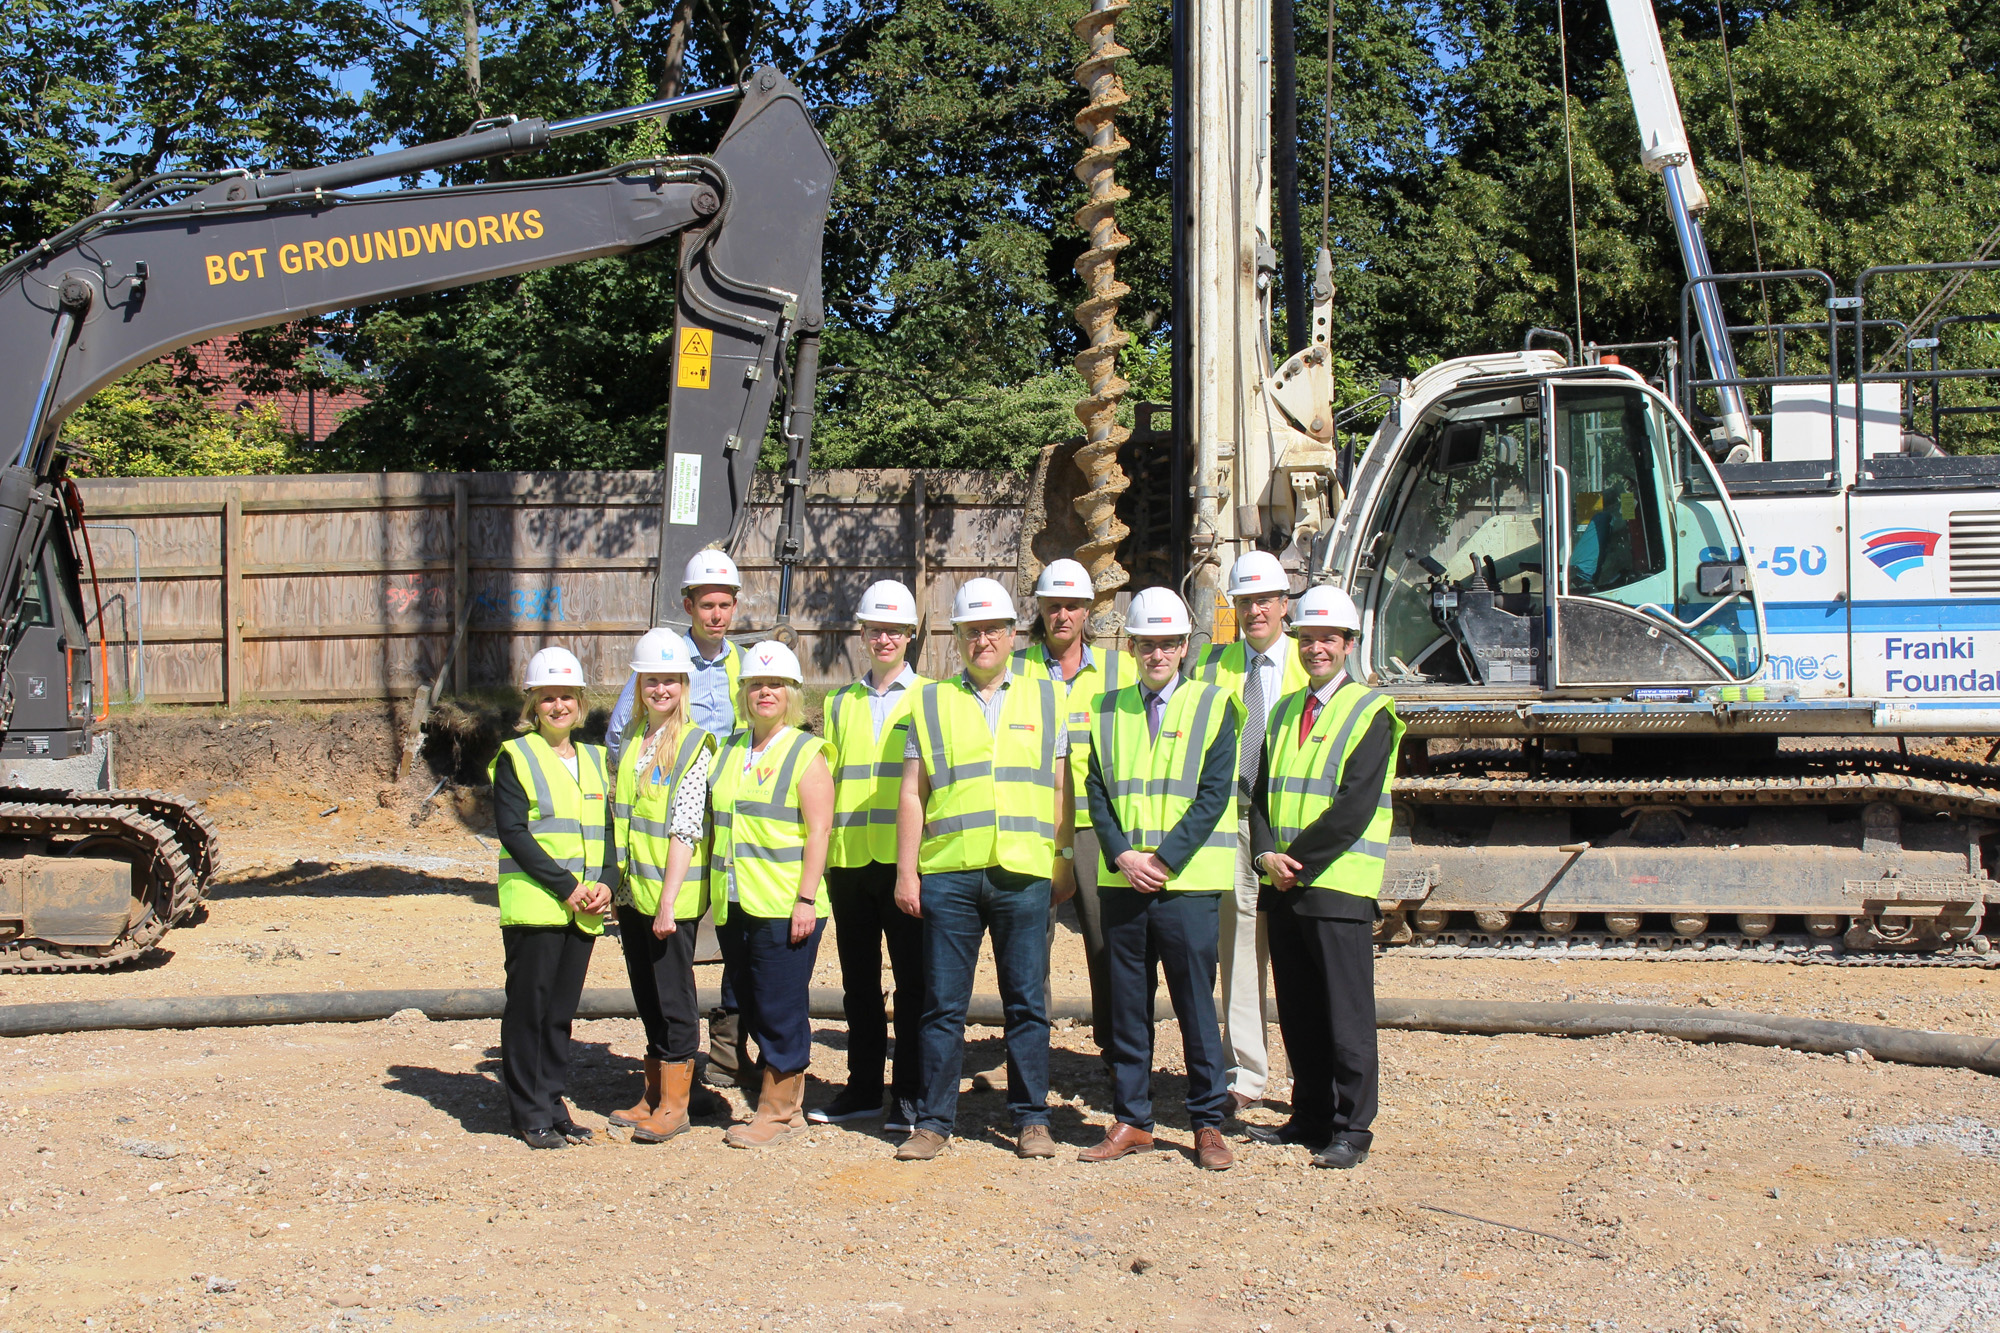 City Council starts work on Housing With Care development